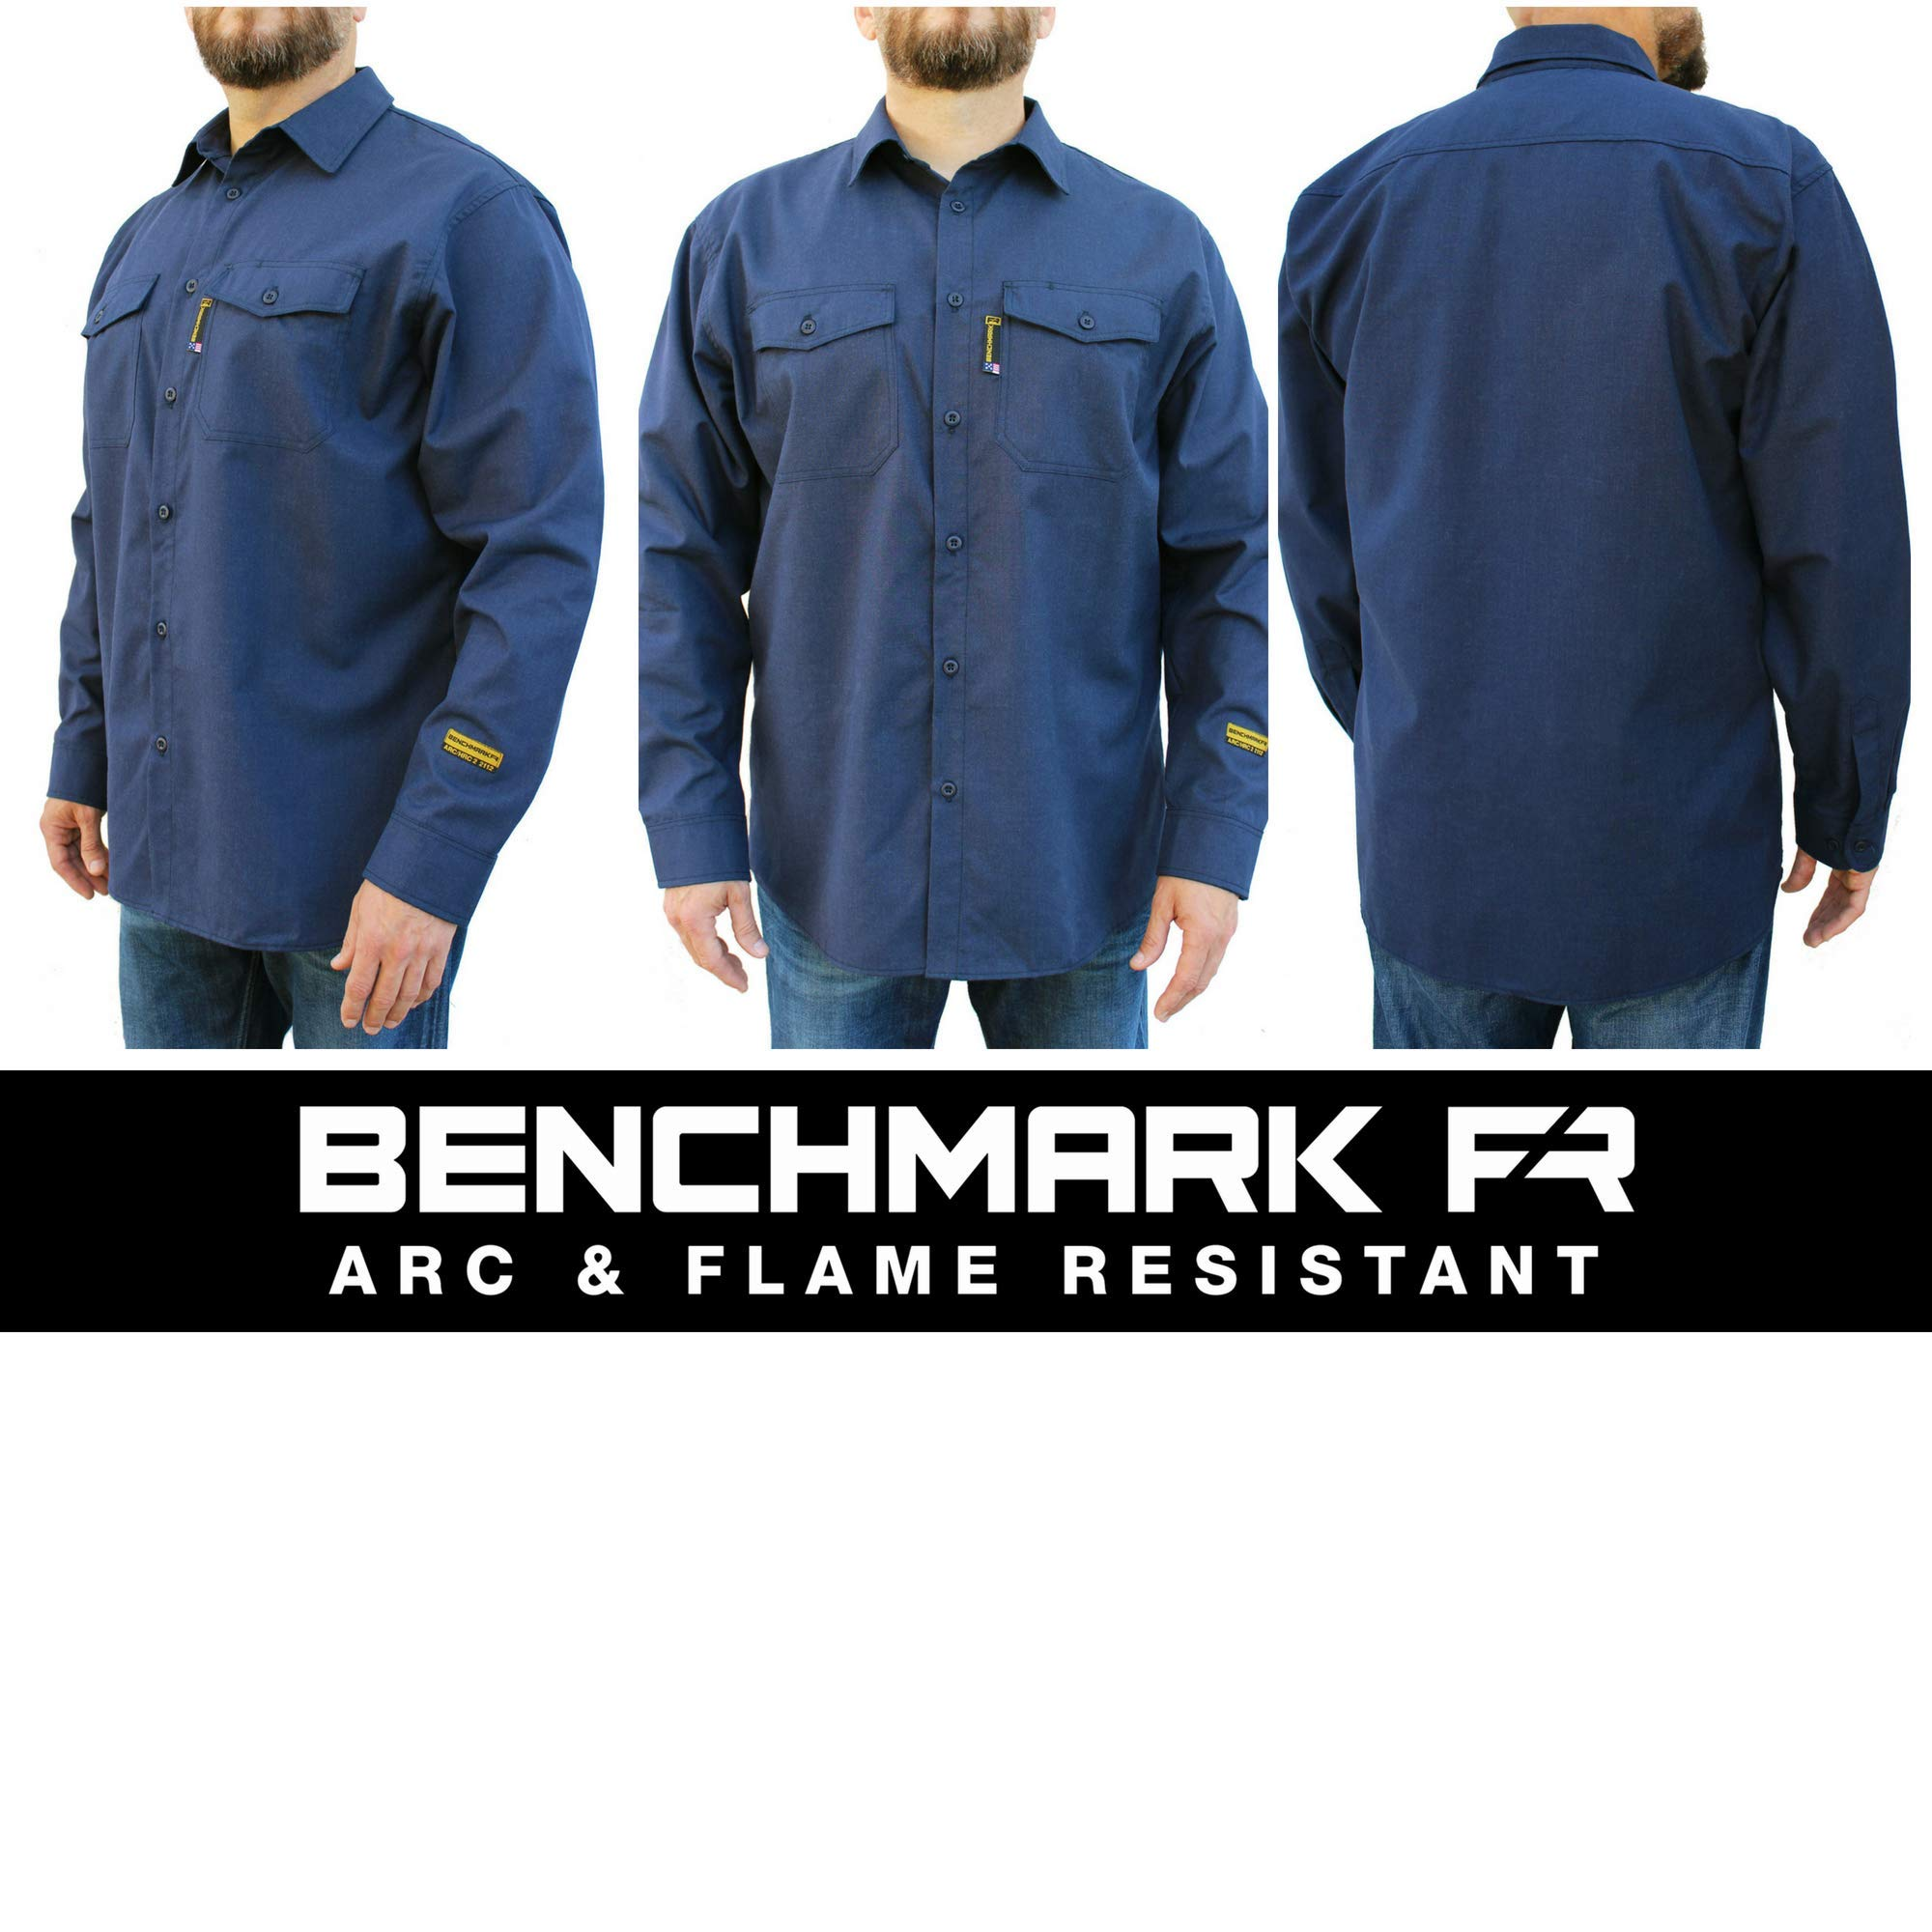 Benchmark FR Silver Bullet, 5.1 oz Ultra Lightweight FR Shirt, NPFA 2112 & CAT 2, Moisture Wicking, Men's FRC with 9 Cal rating, Made in USA, Advanced FR Materials, Navy, Large by Benchmark FR (Image #3)